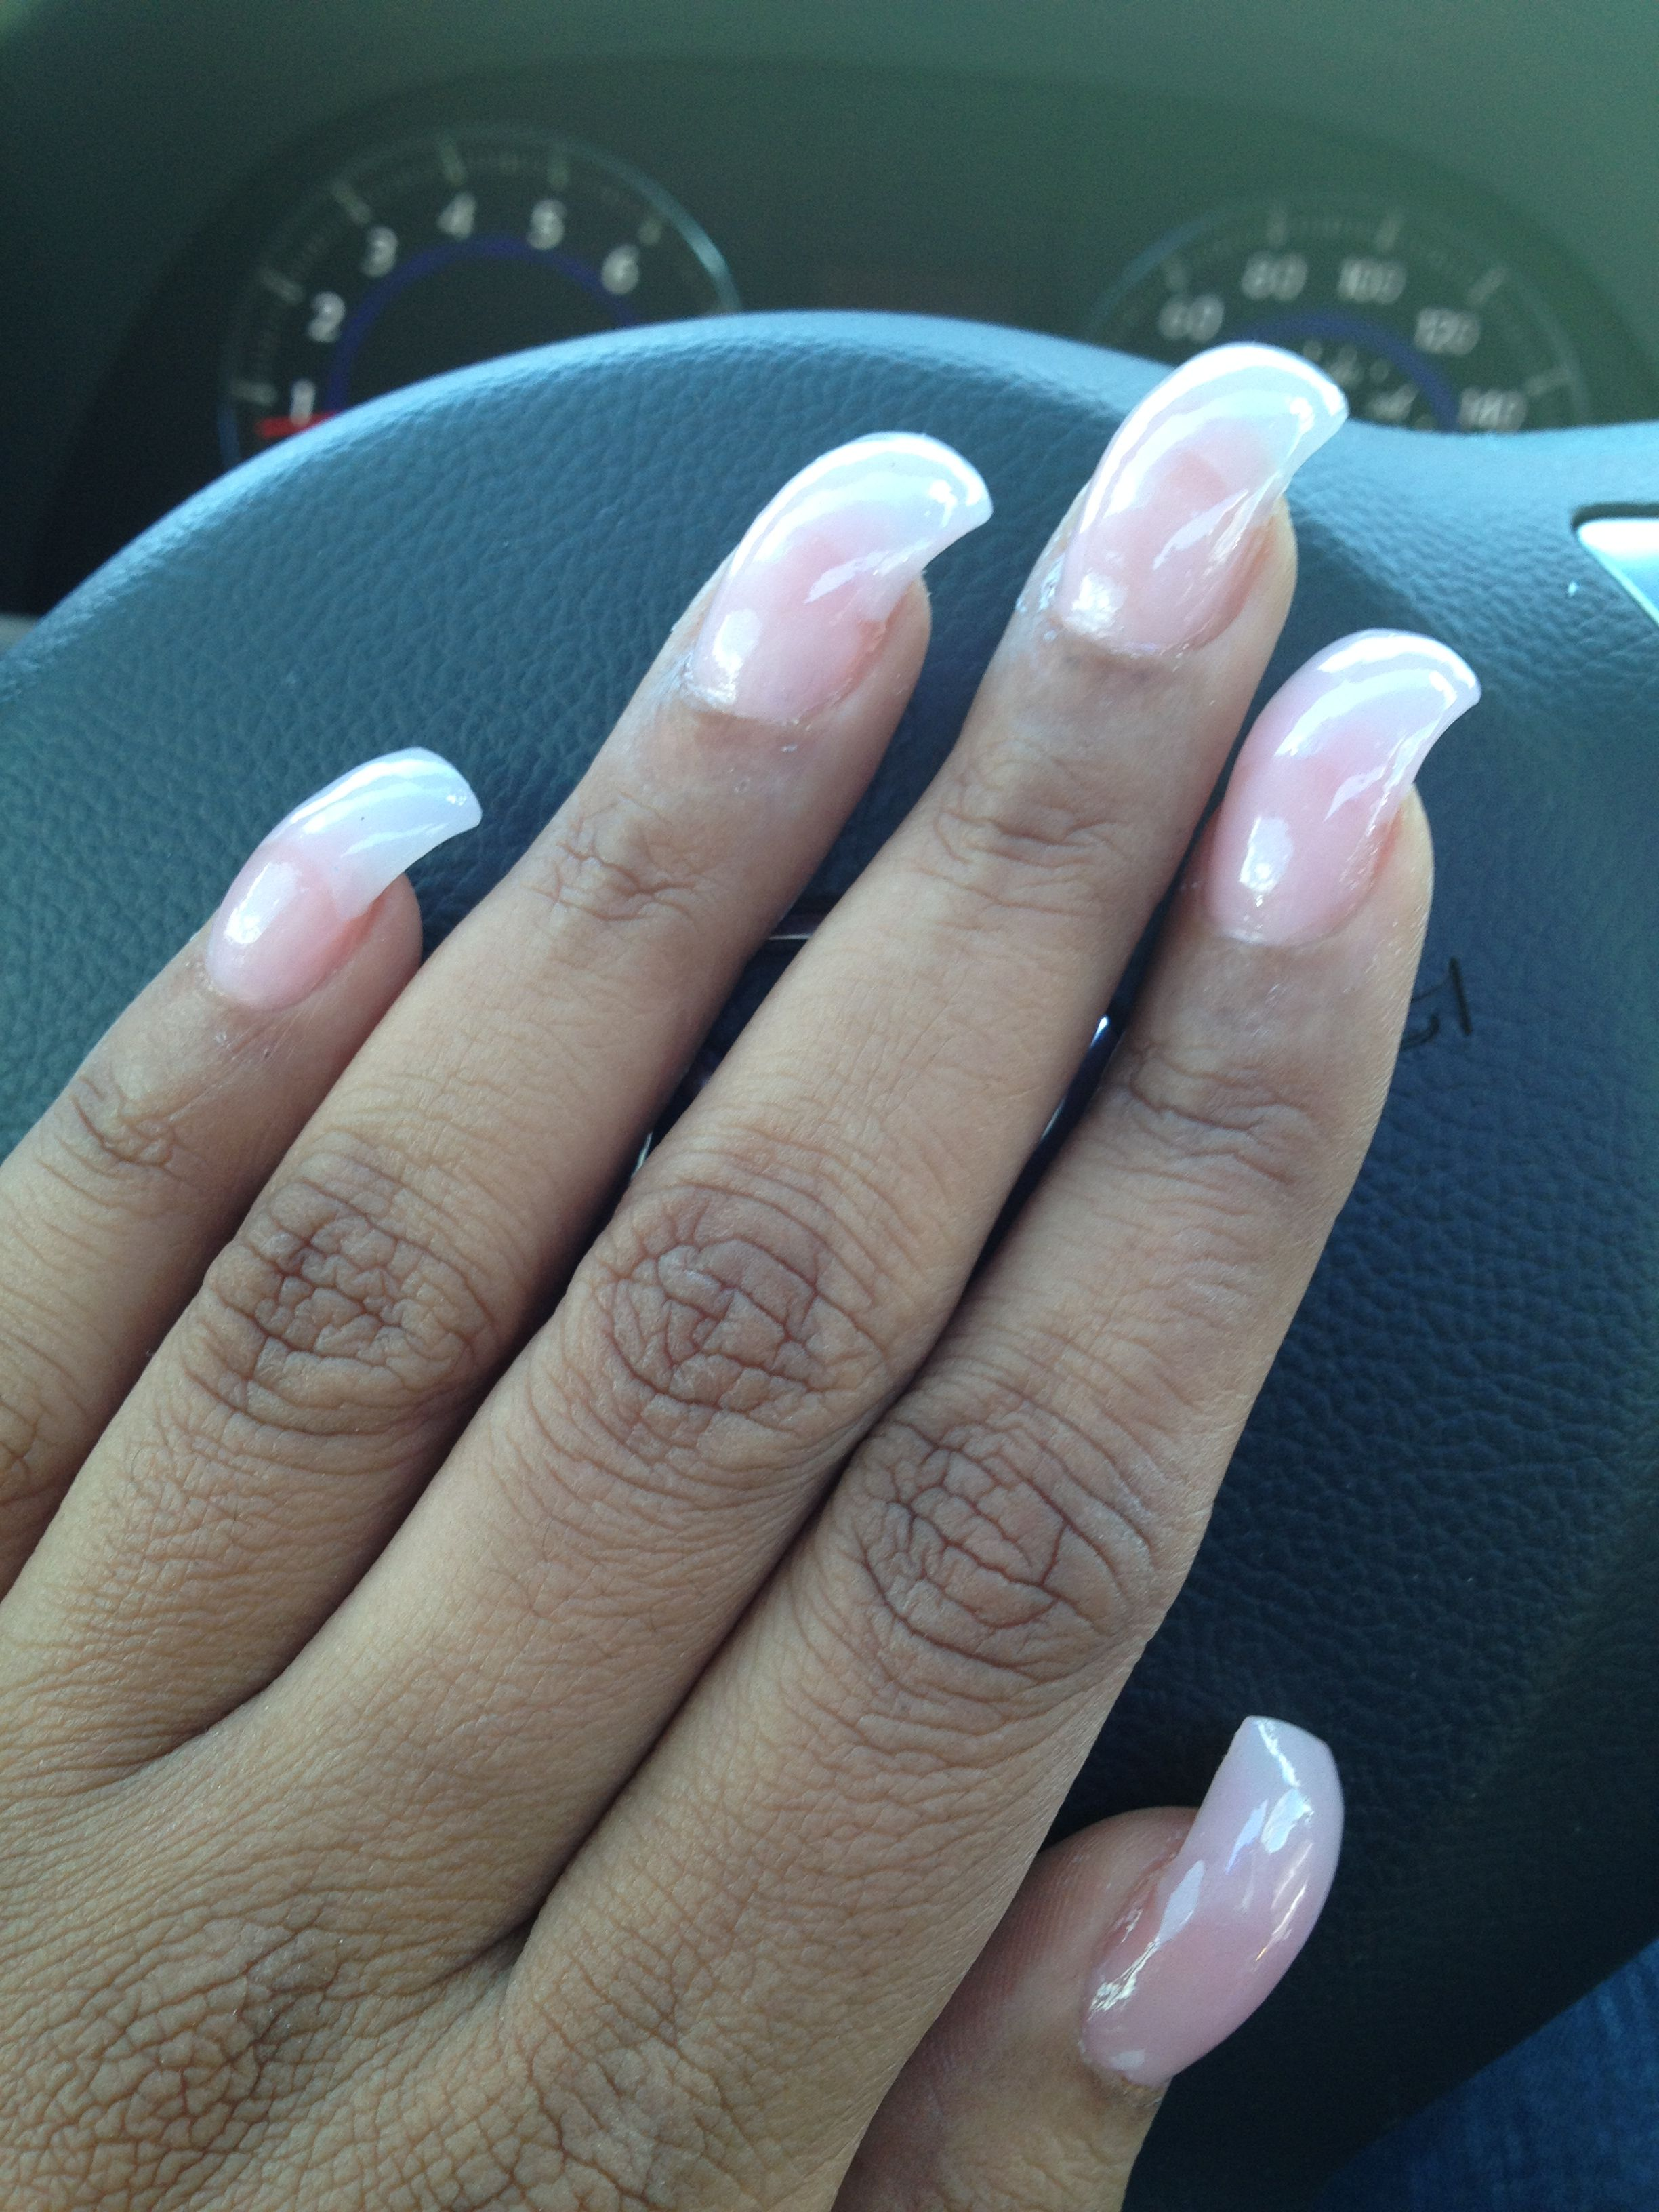 My New Curved Nail Set From Last Year I Loved Them Curlnails Longnails Curved Nails French Acrylic Nails Fancy Nails